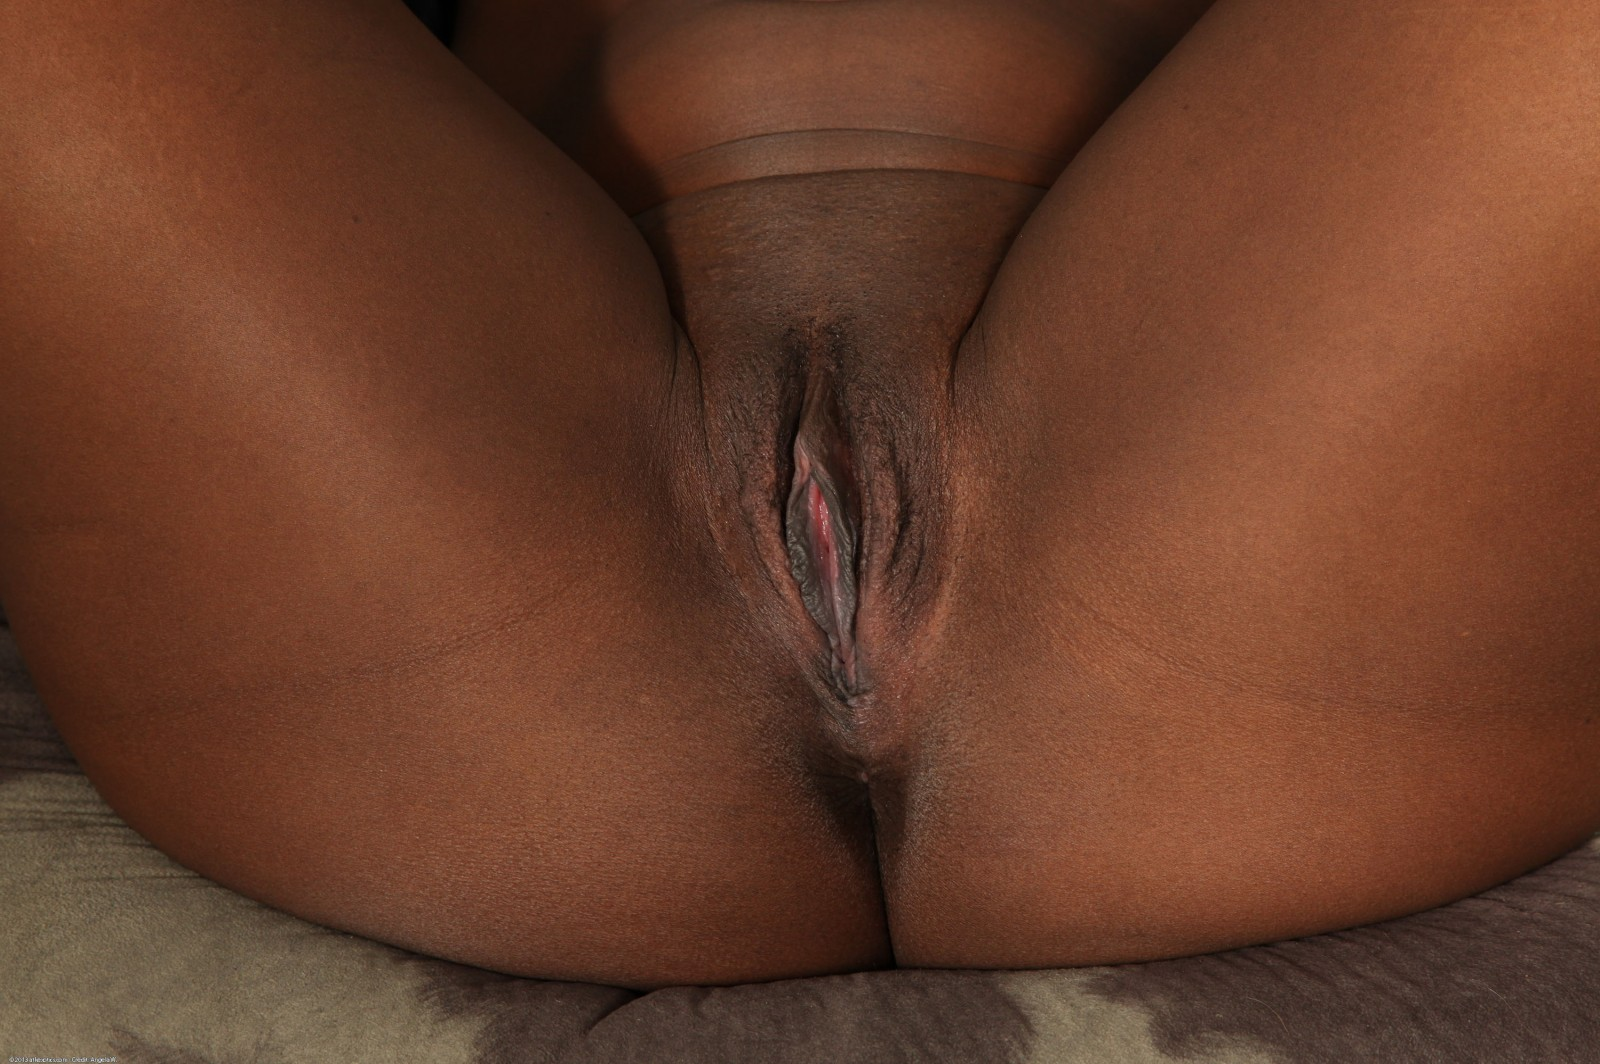 perfect black pussy porn photo - eporner